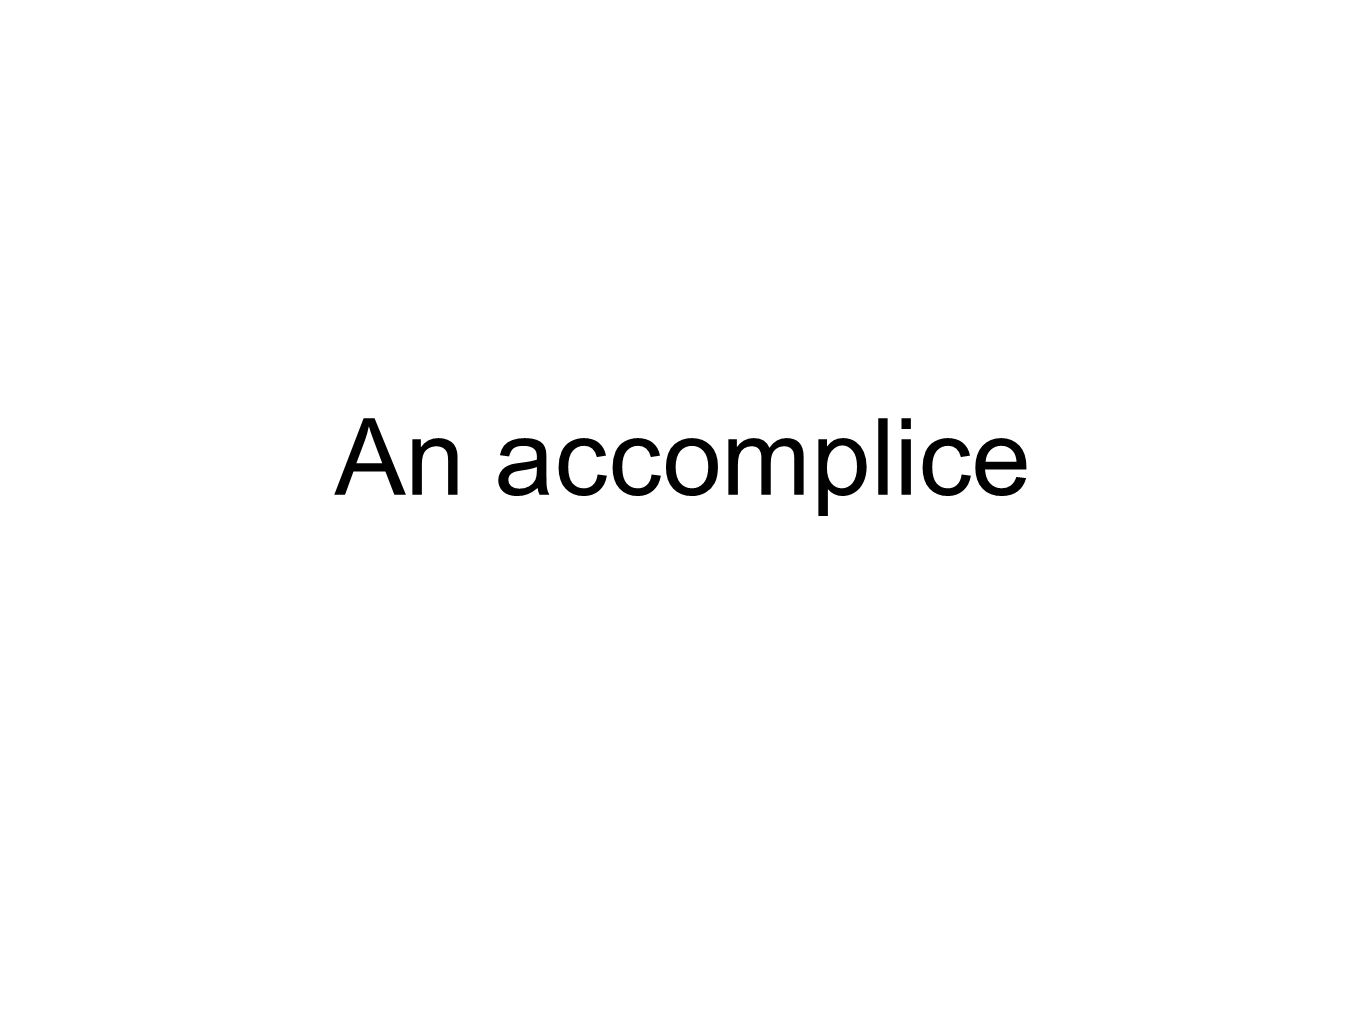 An accomplice